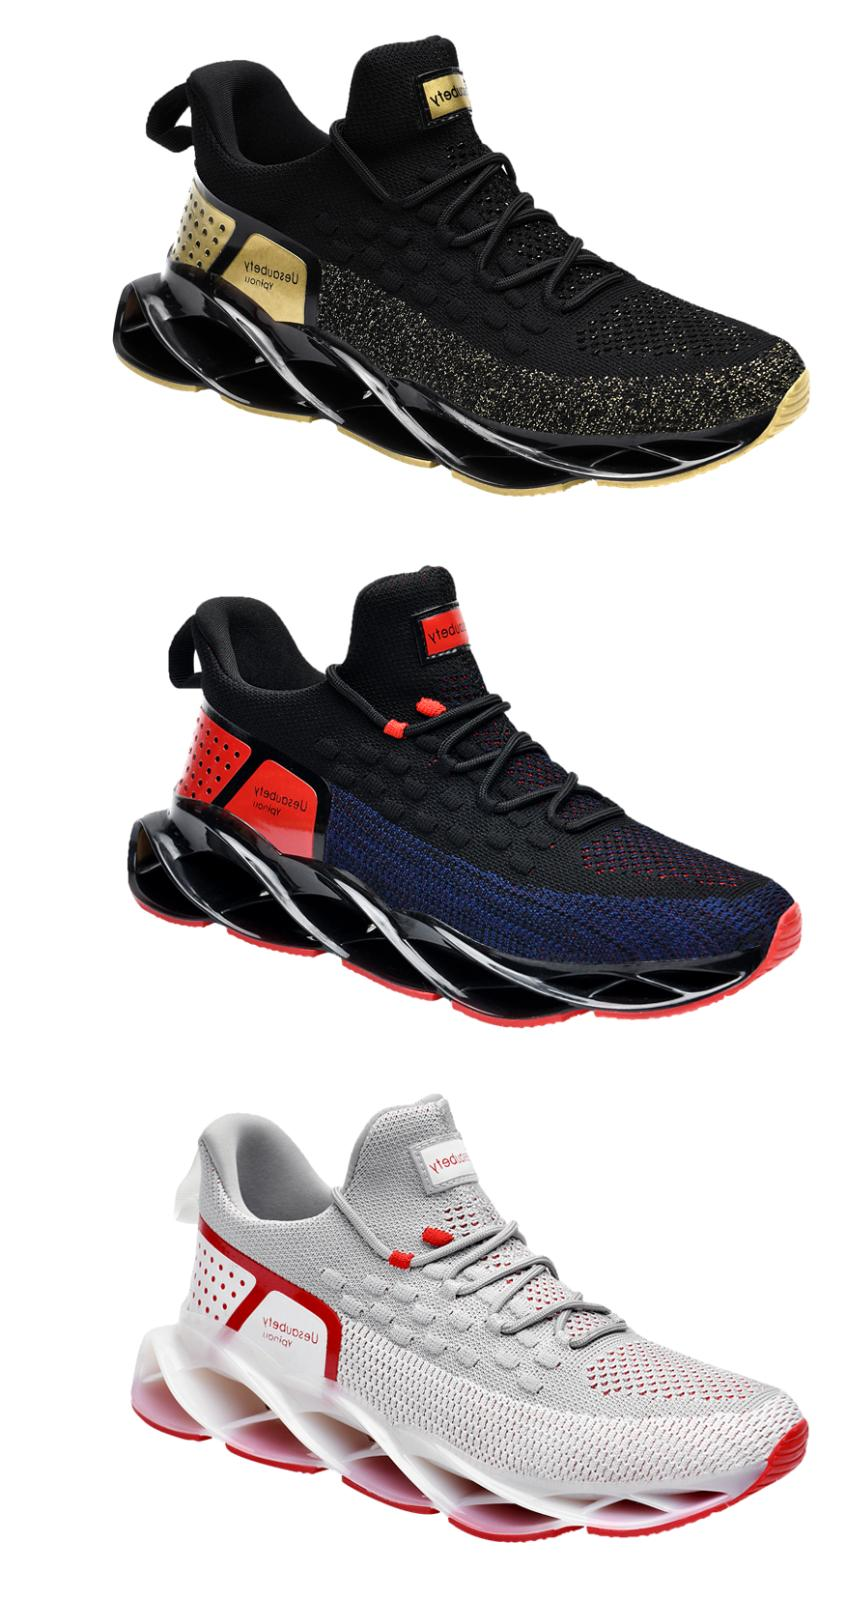 sport breathable fashion knit blade shoes casual